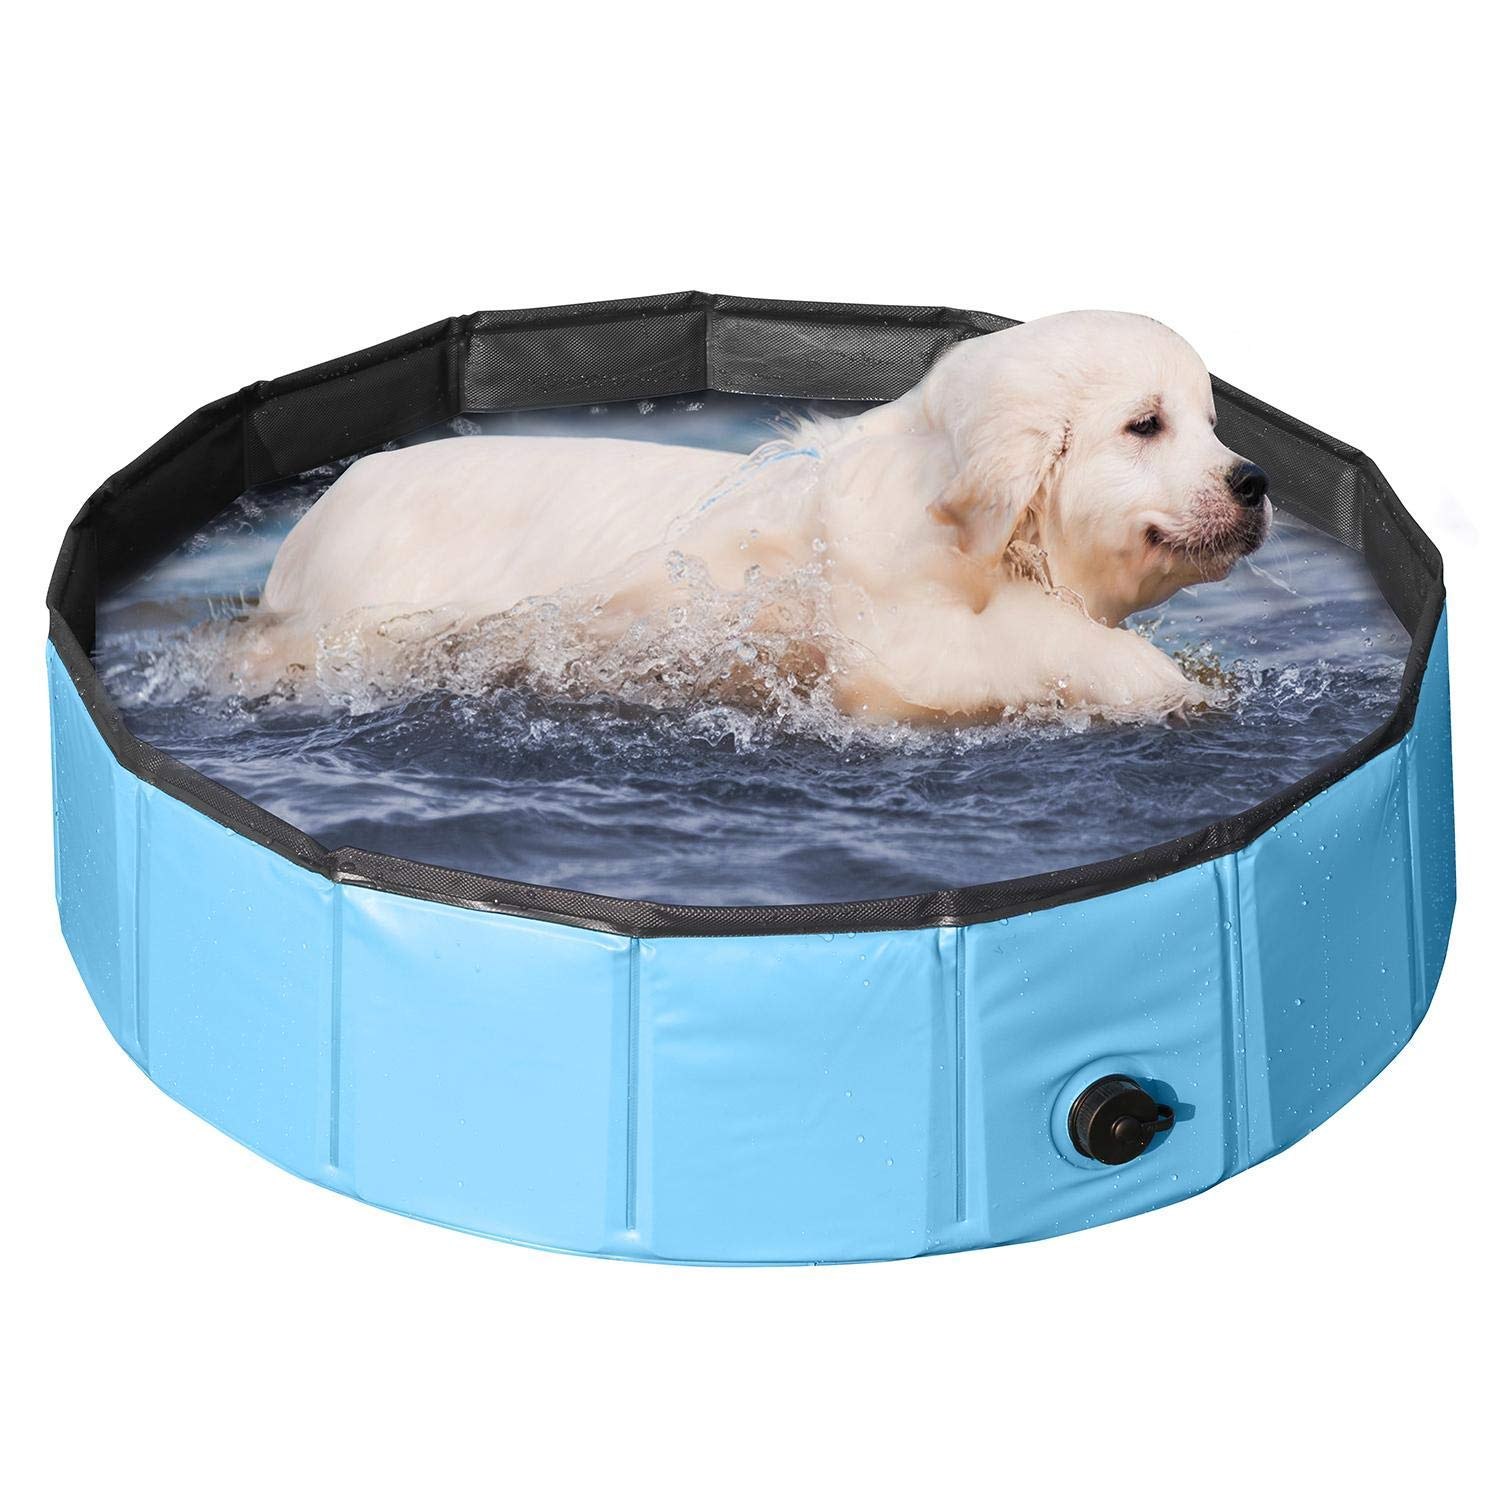 PVC Pet Foldable Swimming Pool Dogs Cats Bathing Tub Portable Bathtub Collapsible Water Pond Pool & Kiddie Pools for Kids Pet Spa Whelping Box Kiddies Pets to Swim and Bath in Outdoor(80 x 20cm)